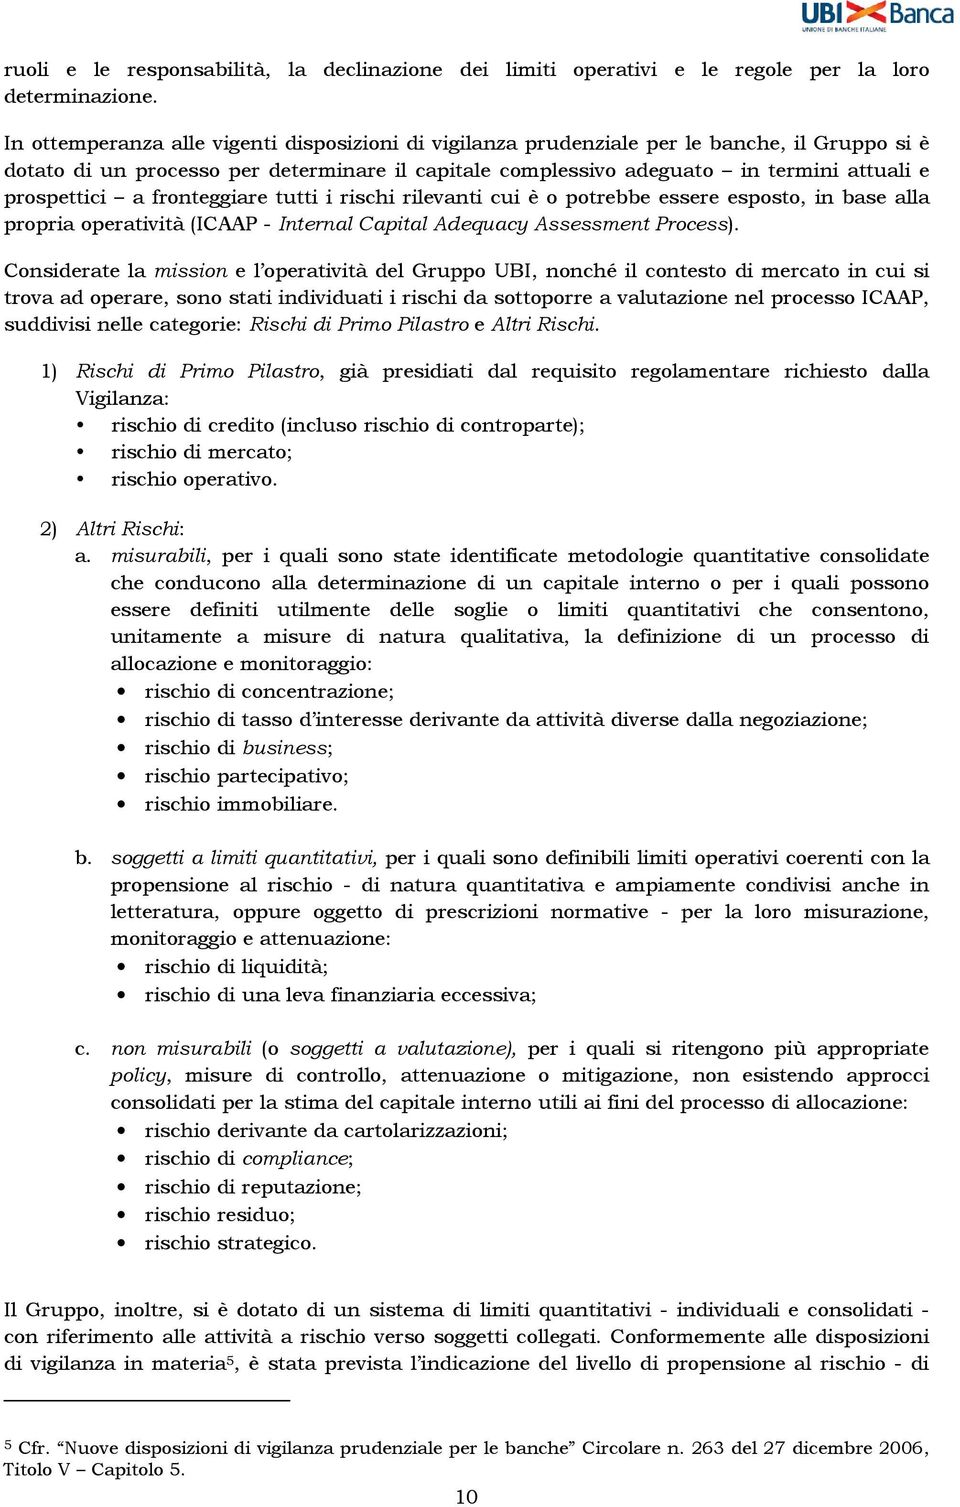 prospettici a fronteggiare tutti i rischi rilevanti cui è o potrebbe essere esposto, in base alla propria operatività (ICAAP - Internal Capital Adequacy Assessment Process).